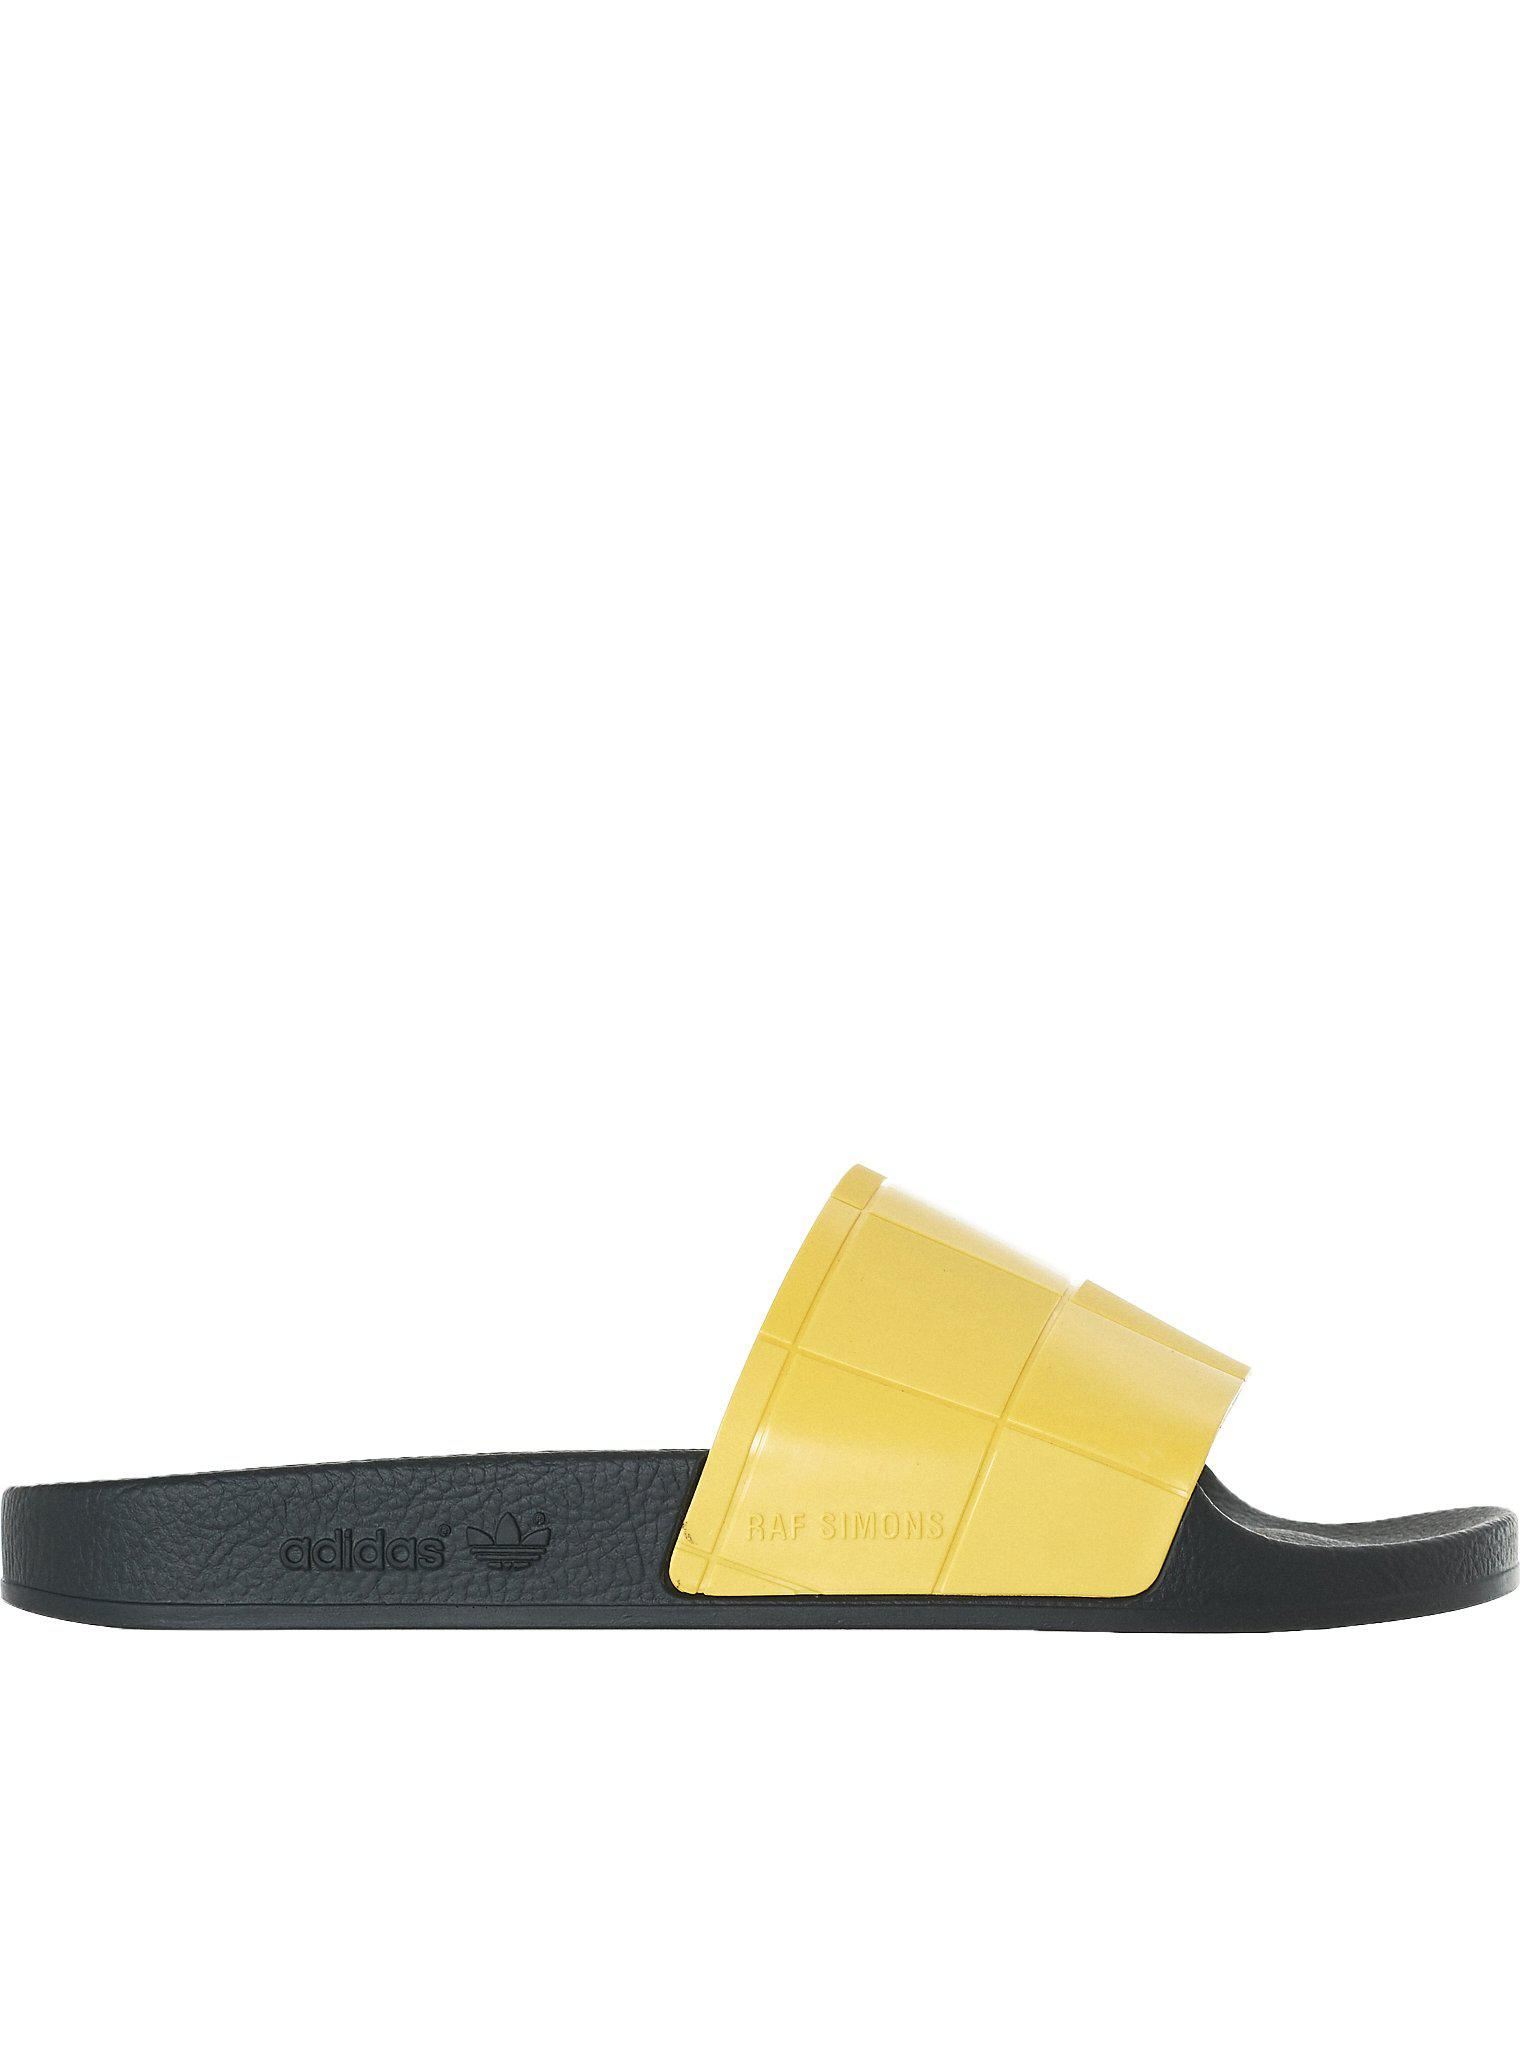 d8c829e64bb ... Yellow Adilette Checkerboard Slides for Men - Lyst. View fullscreen